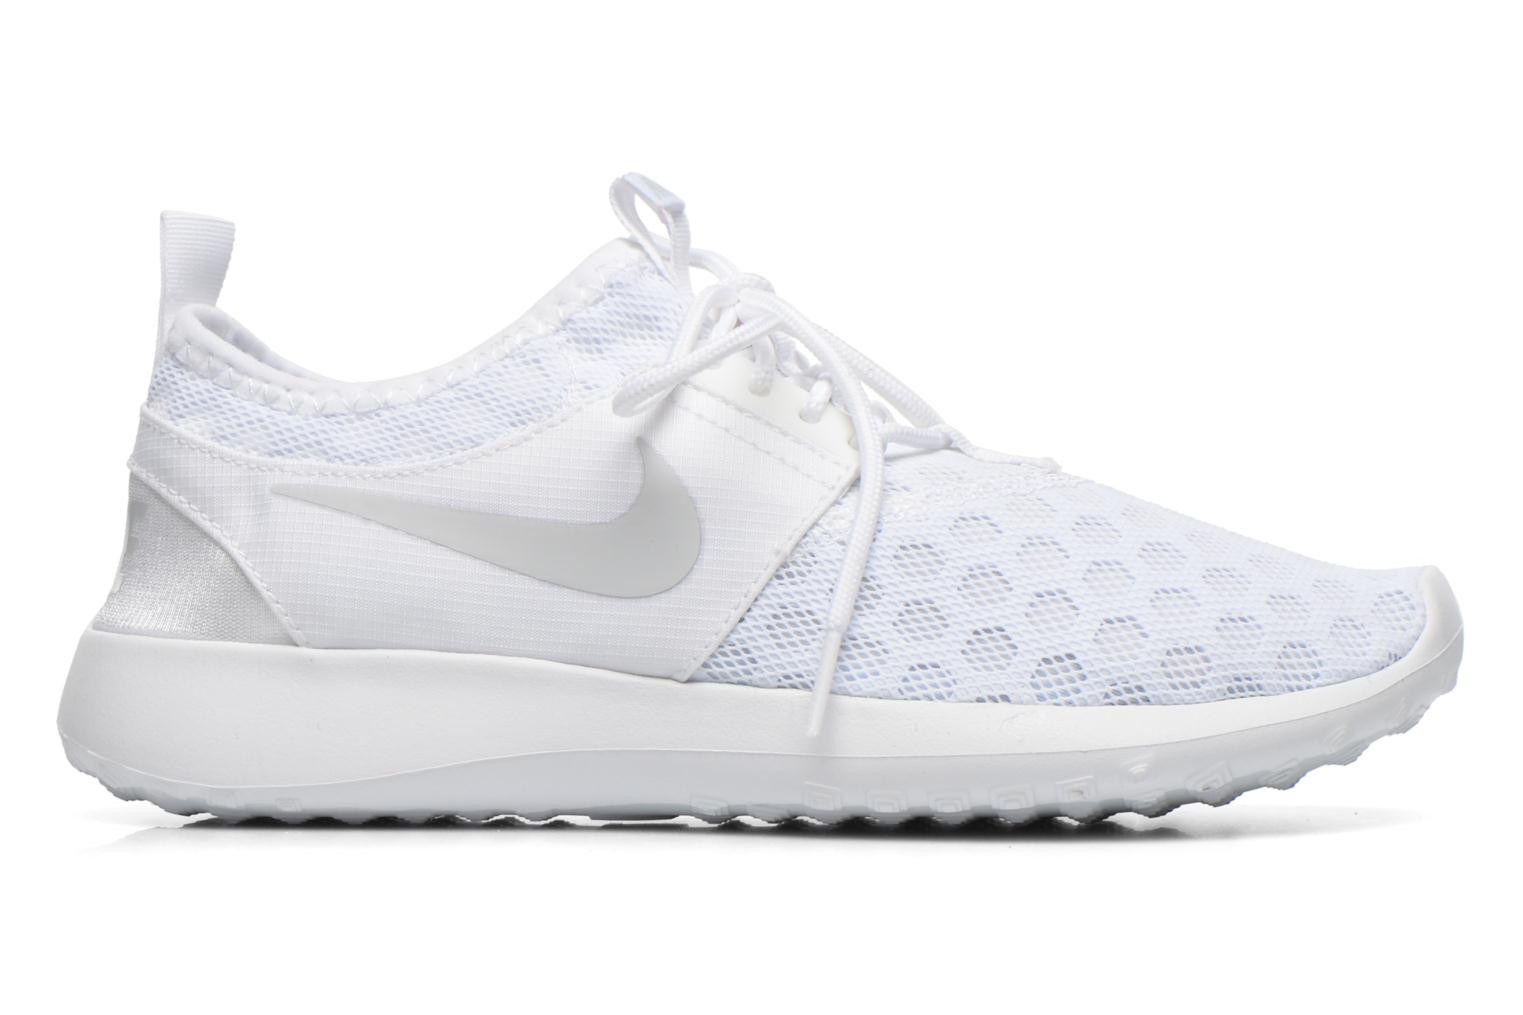 Wmns Nike Juvenate White/Pure Platinum